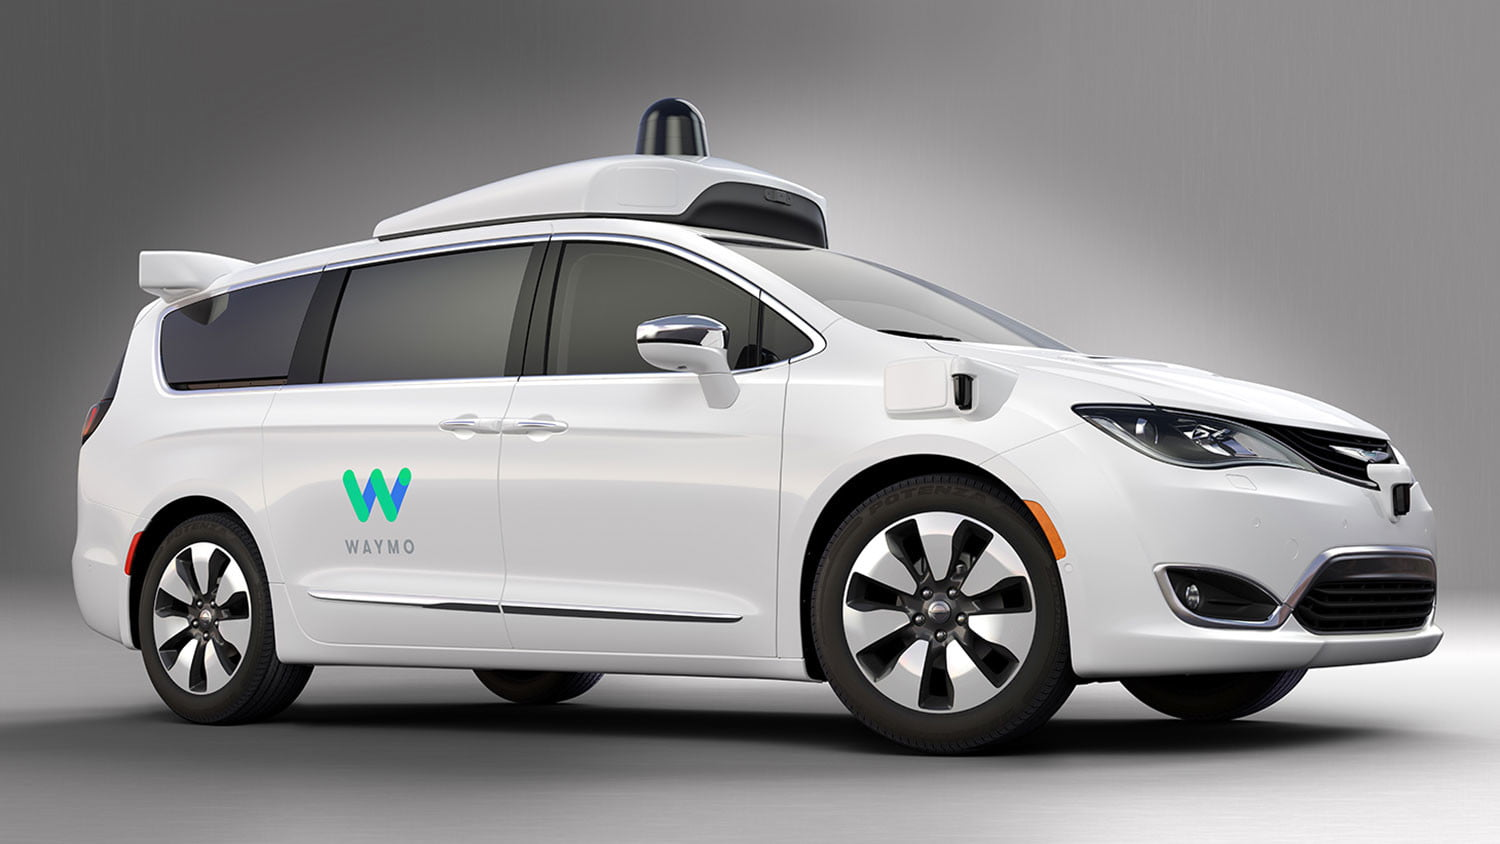 Waymo Gives Rides In Its Fully Self-Driving Cars In Arizona ...